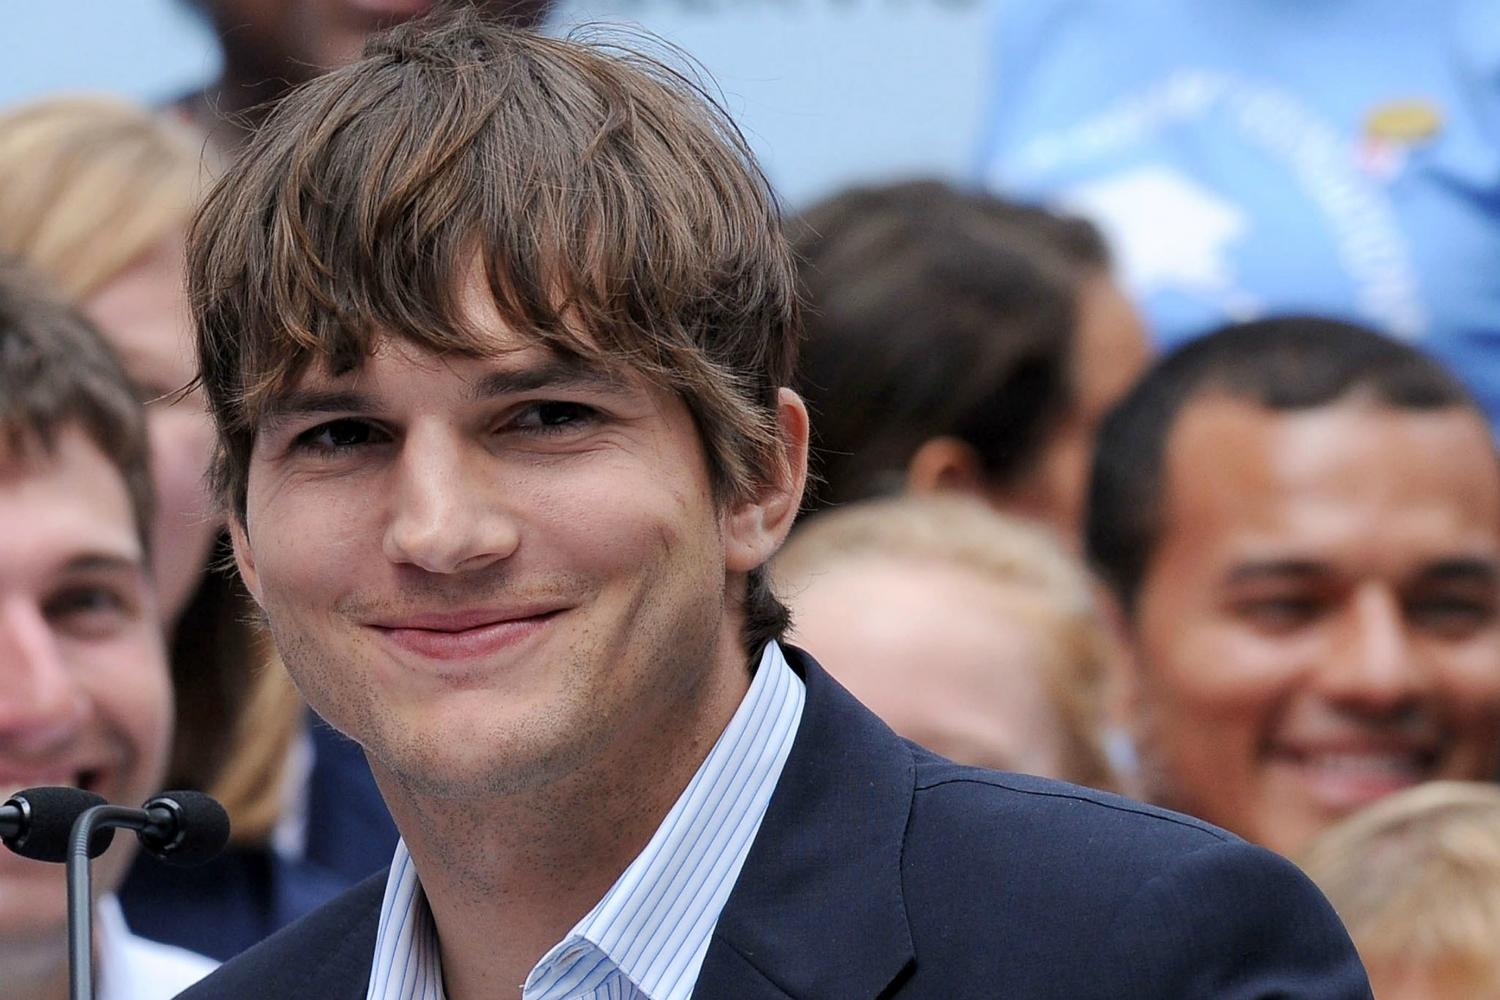 Ashton Kutcher and Danny Masterson bring their comedic chemistry to ... Ashton Kutcher